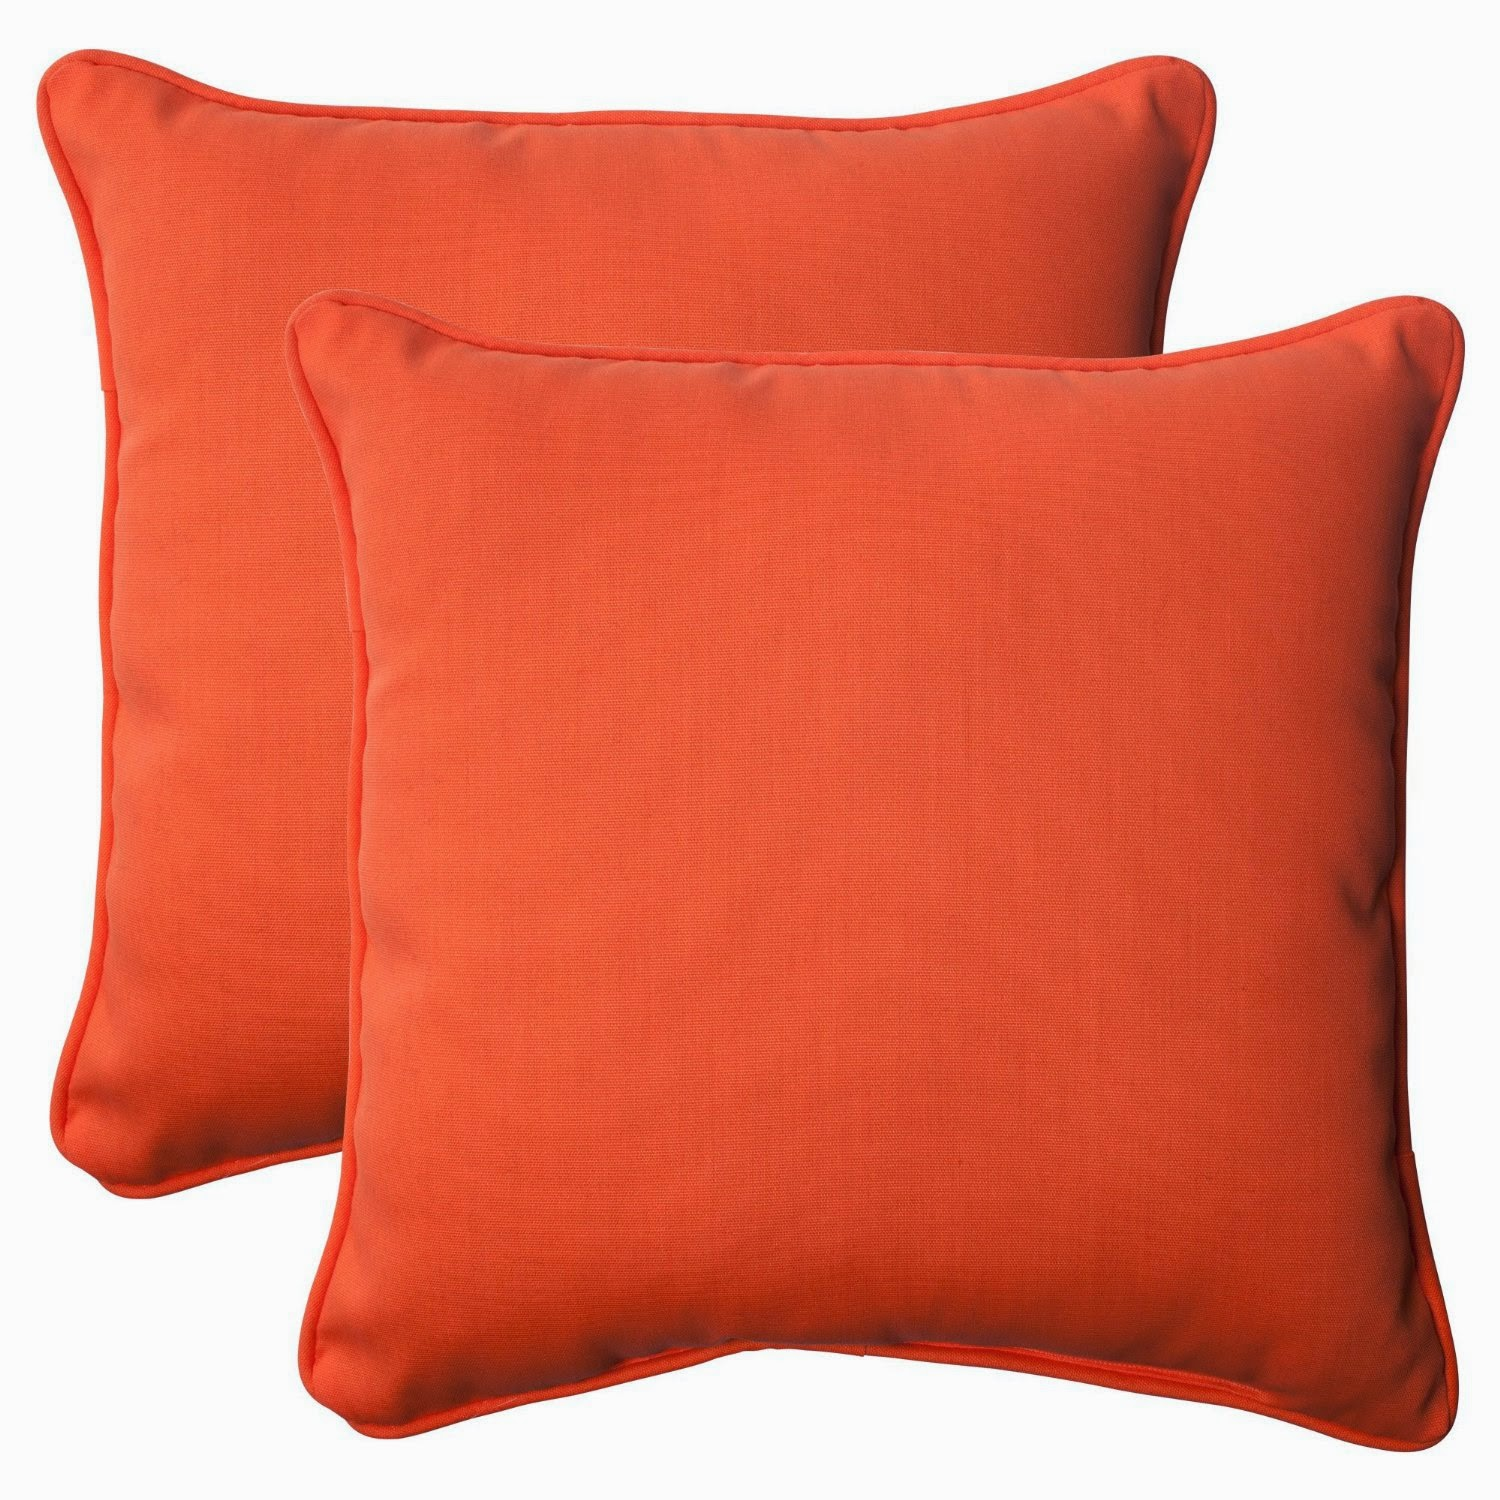 Orange Decorative Pillows Couch : orange couch: April 2014